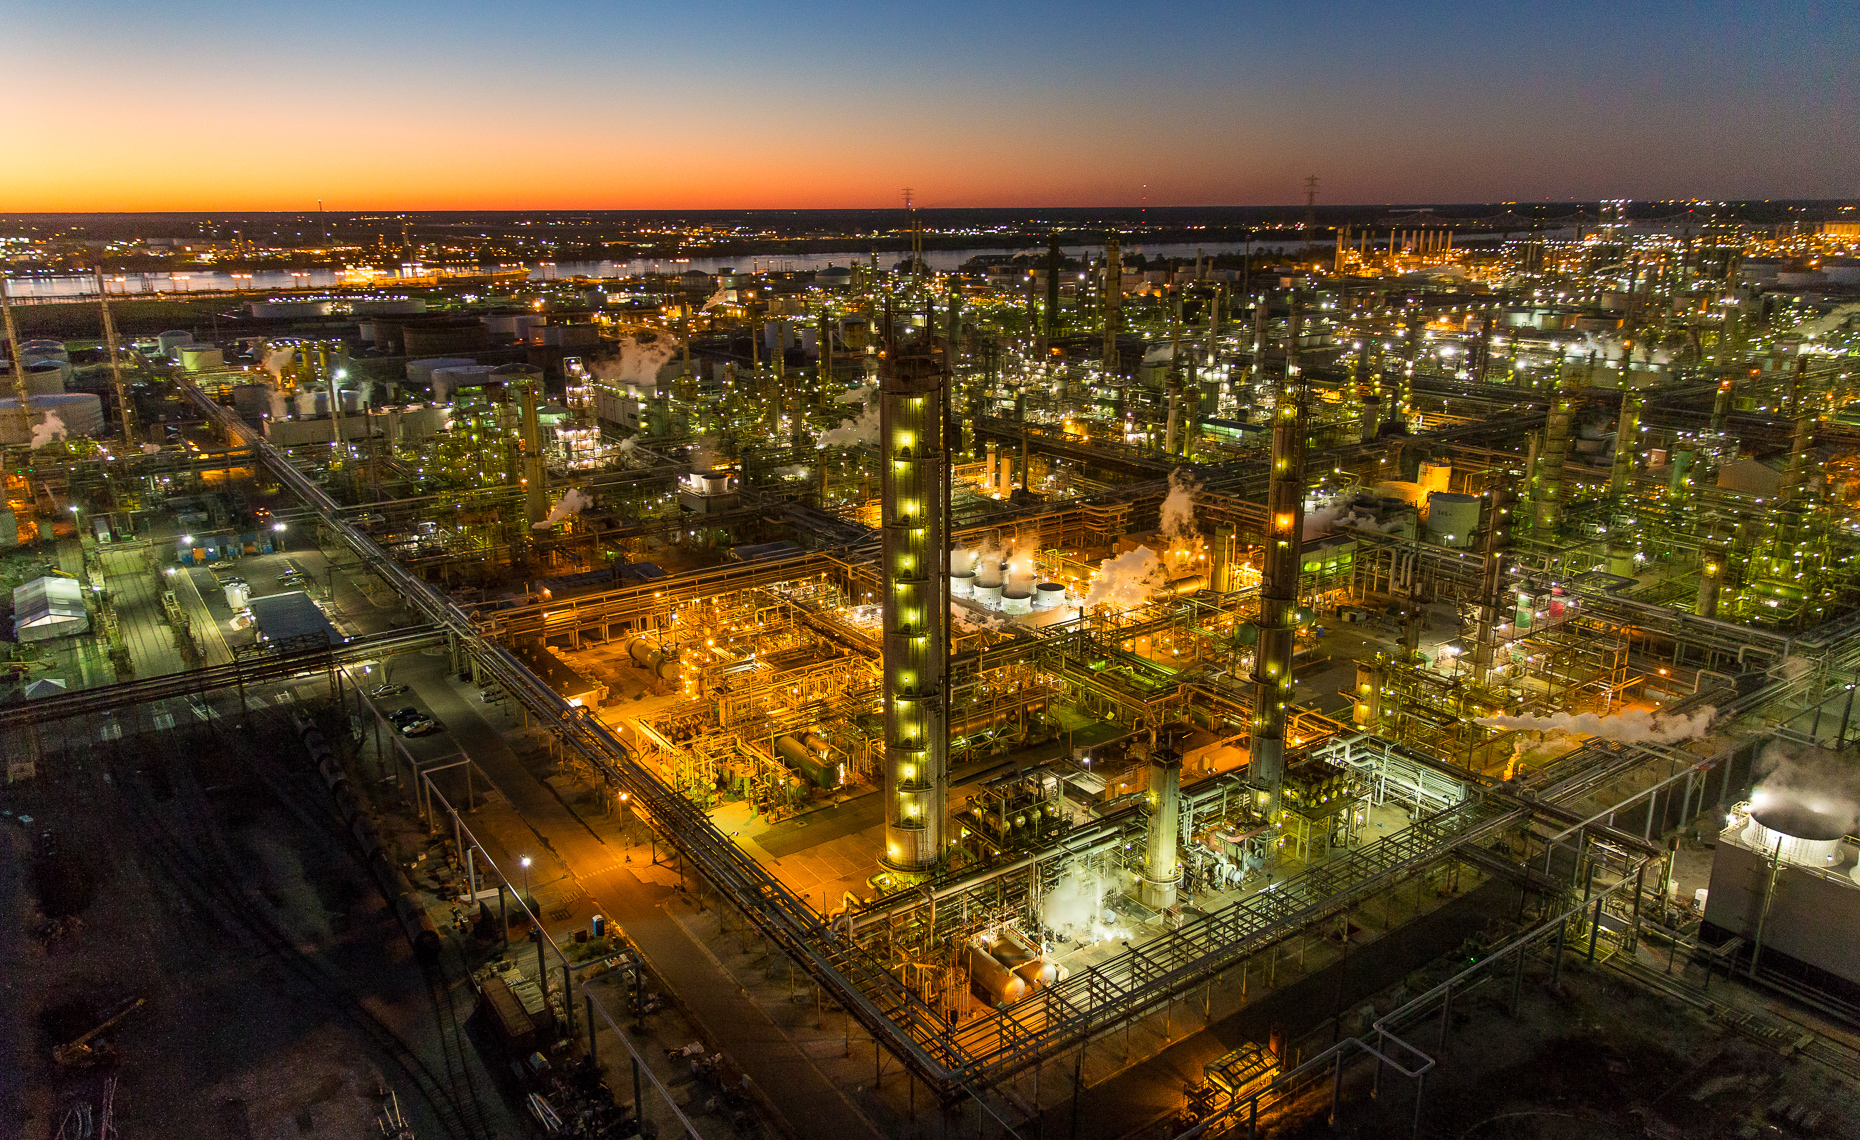 SEALE_INDUSTRIAL_LANDSCAPE_REFINERY_COMPLEX_HOUSTON